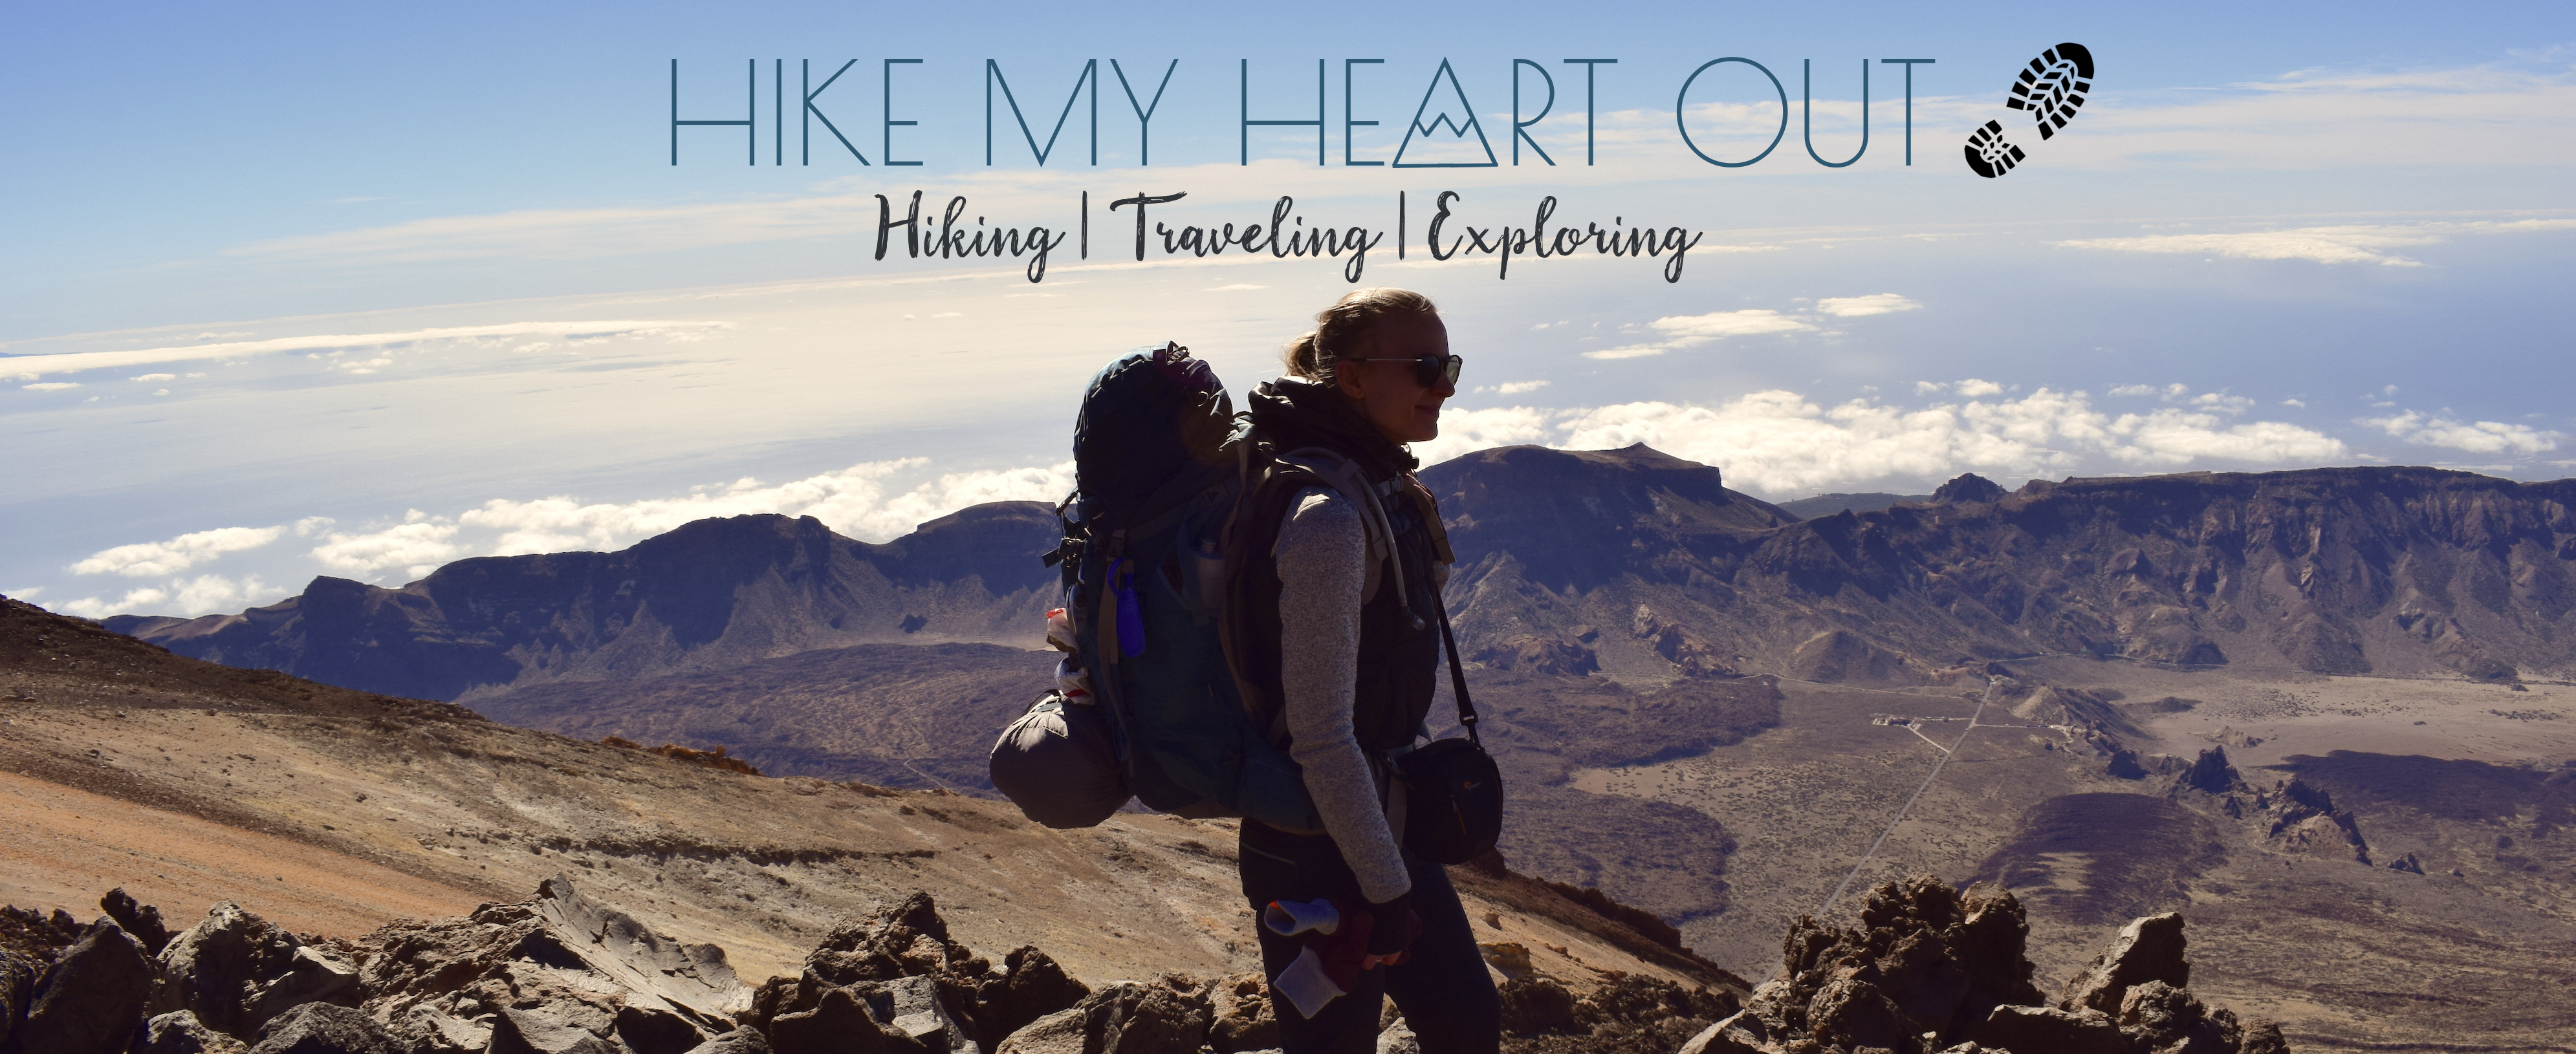 HIKE MY HEART OUT | En blog om at vandre